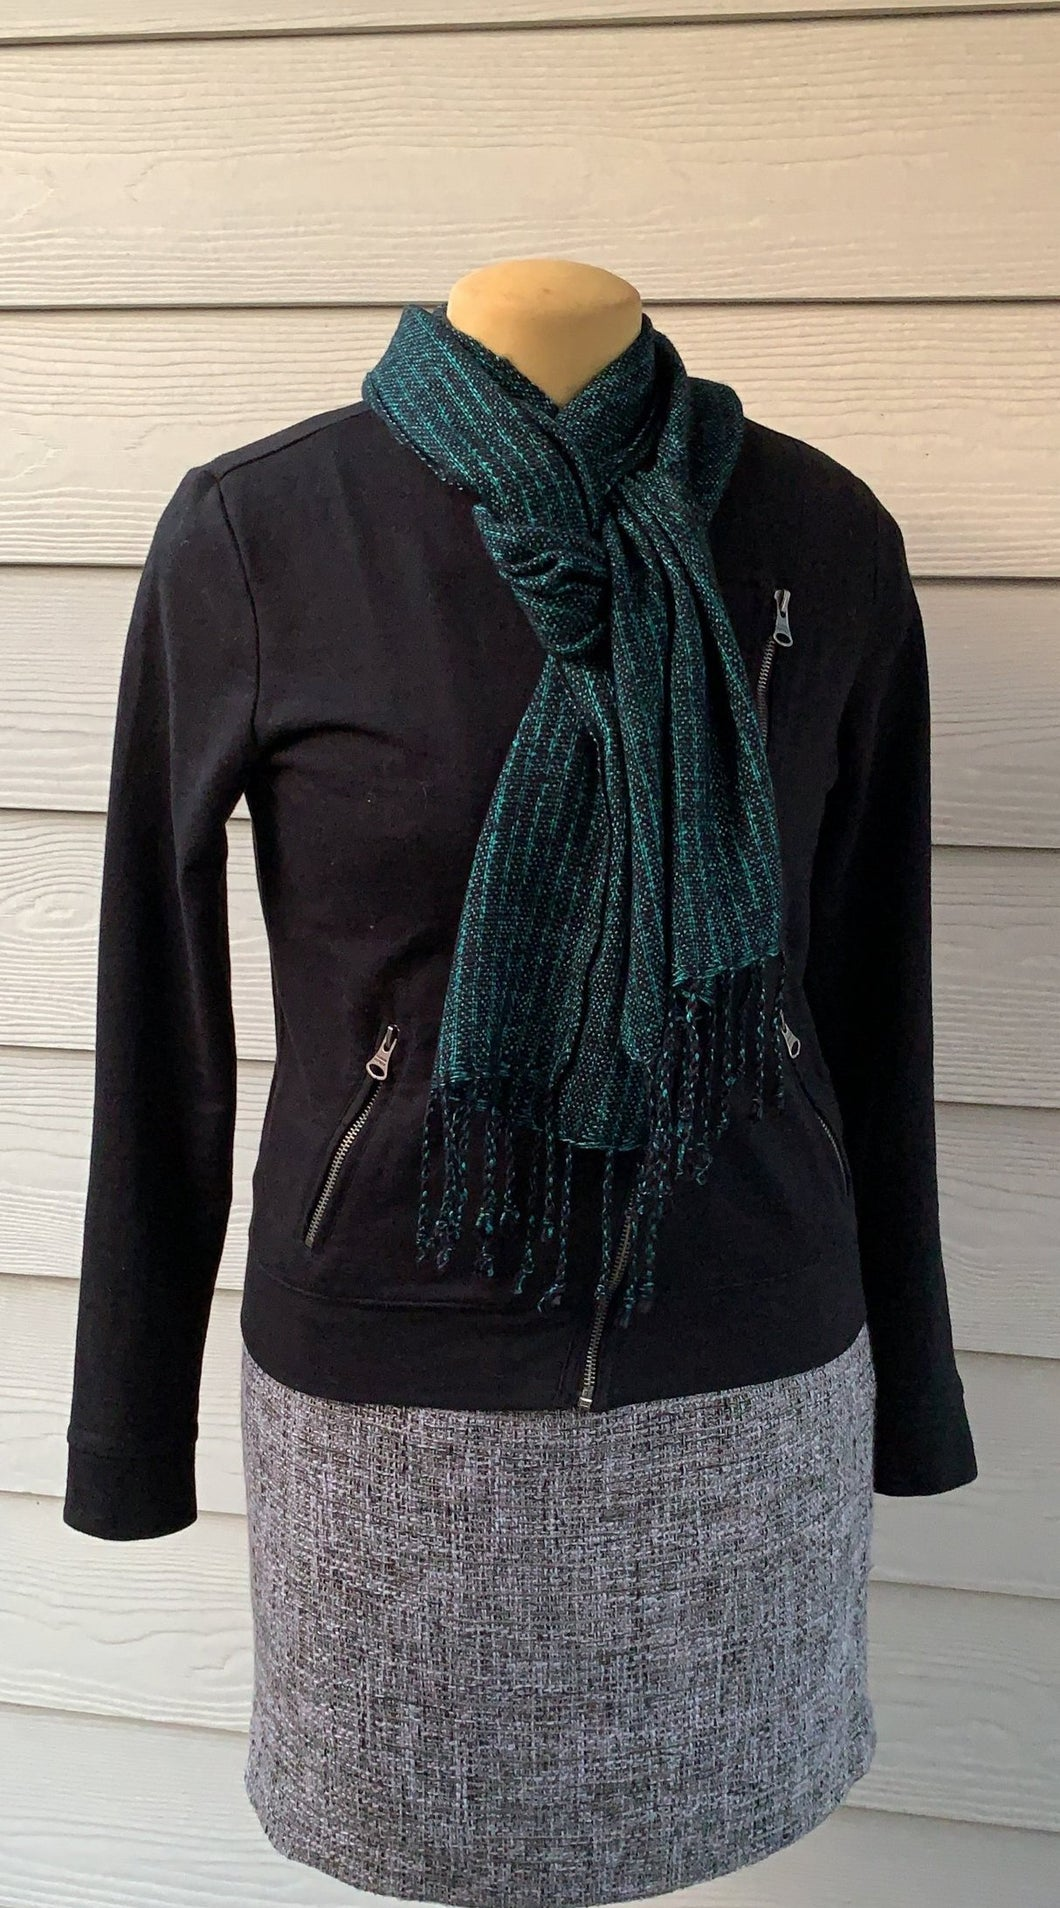 Scarf - Green and Black with Tassels